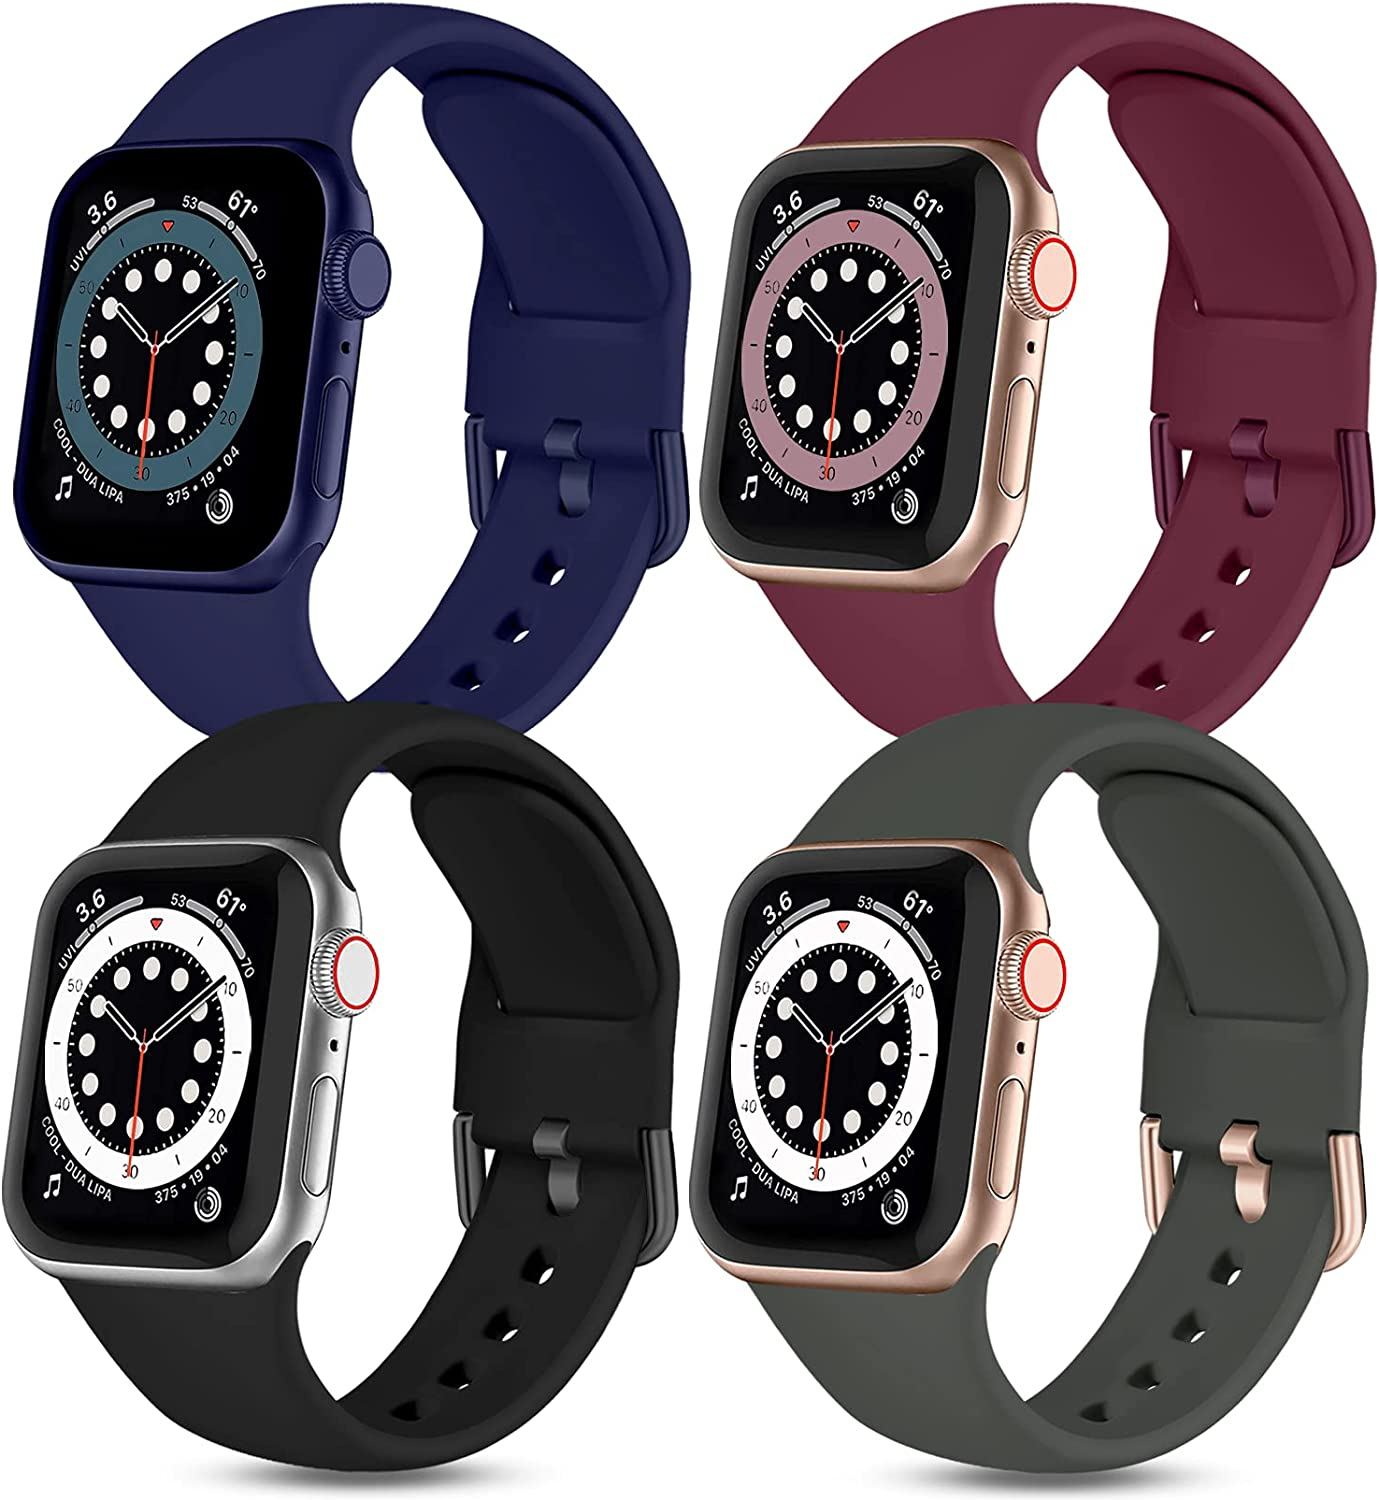 Witzon 4 Pack Compatible with Apple Watch Band 42mm 44mm iWatch Series 6 5 4 3 2 1 & SE for Women Girls Men, Soft Silicone Cute Sport Strap Wristbands, Black/Wine Red/Deep Grey/Navy Blue